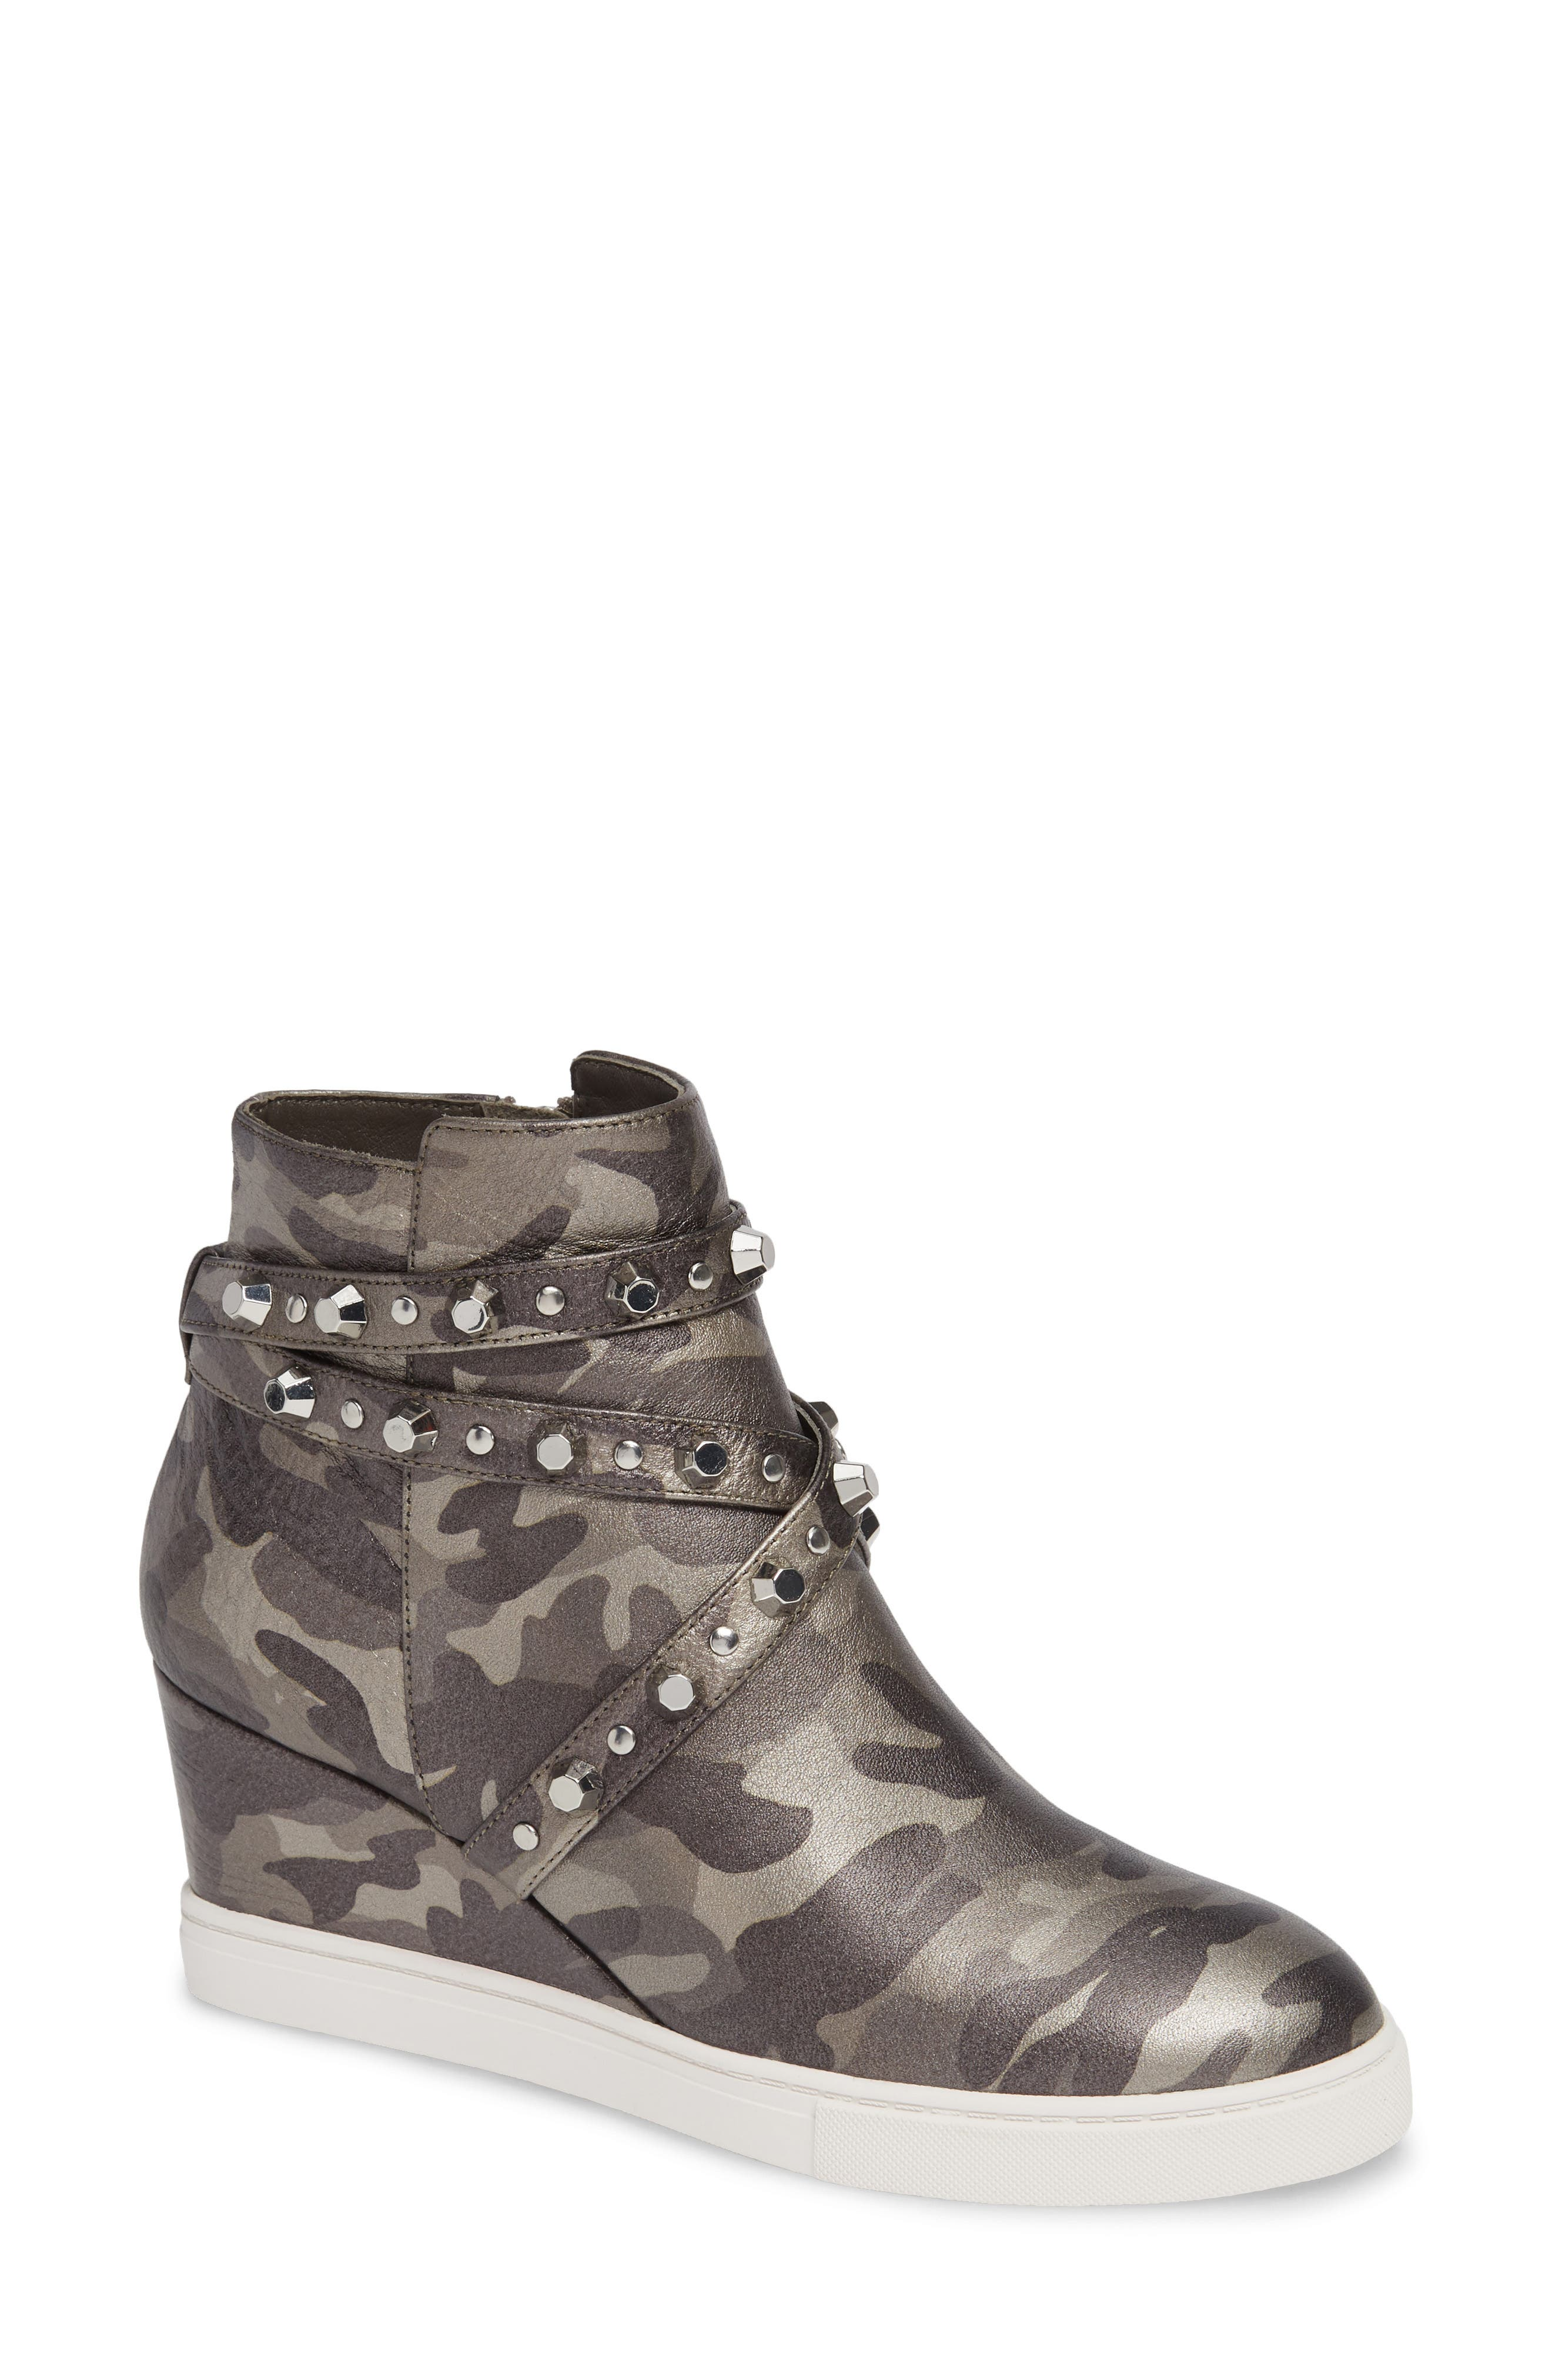 Fallon Studded Wedge Sneaker by Linea Paolo